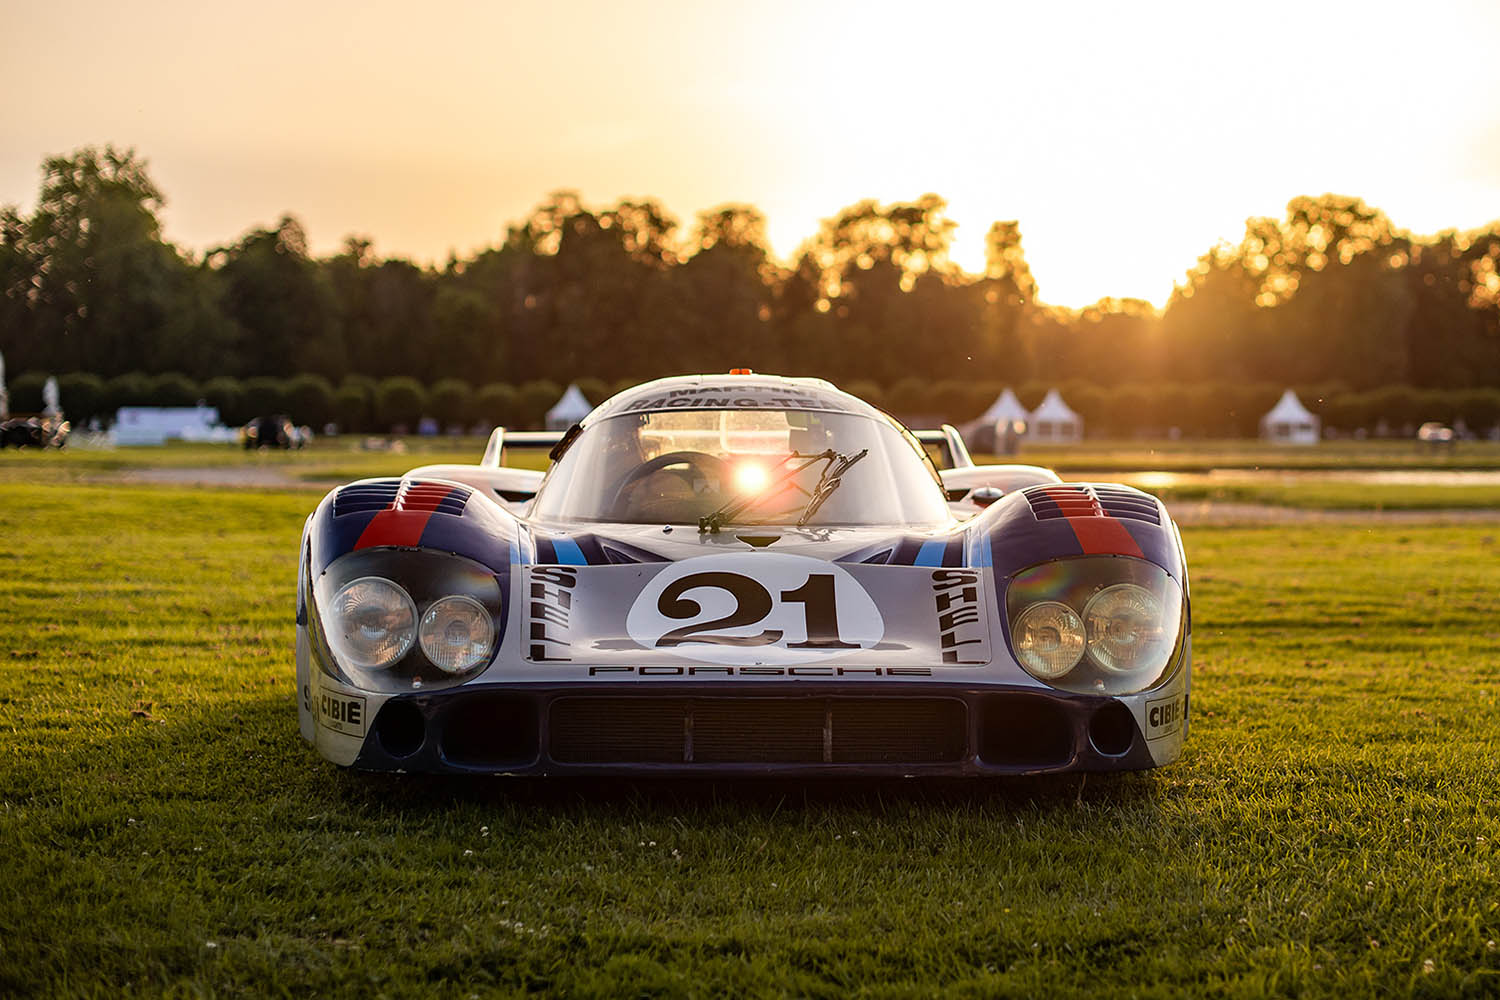 2019_PeterAuto_Chantilly_AlexisGoure_0220.jpg